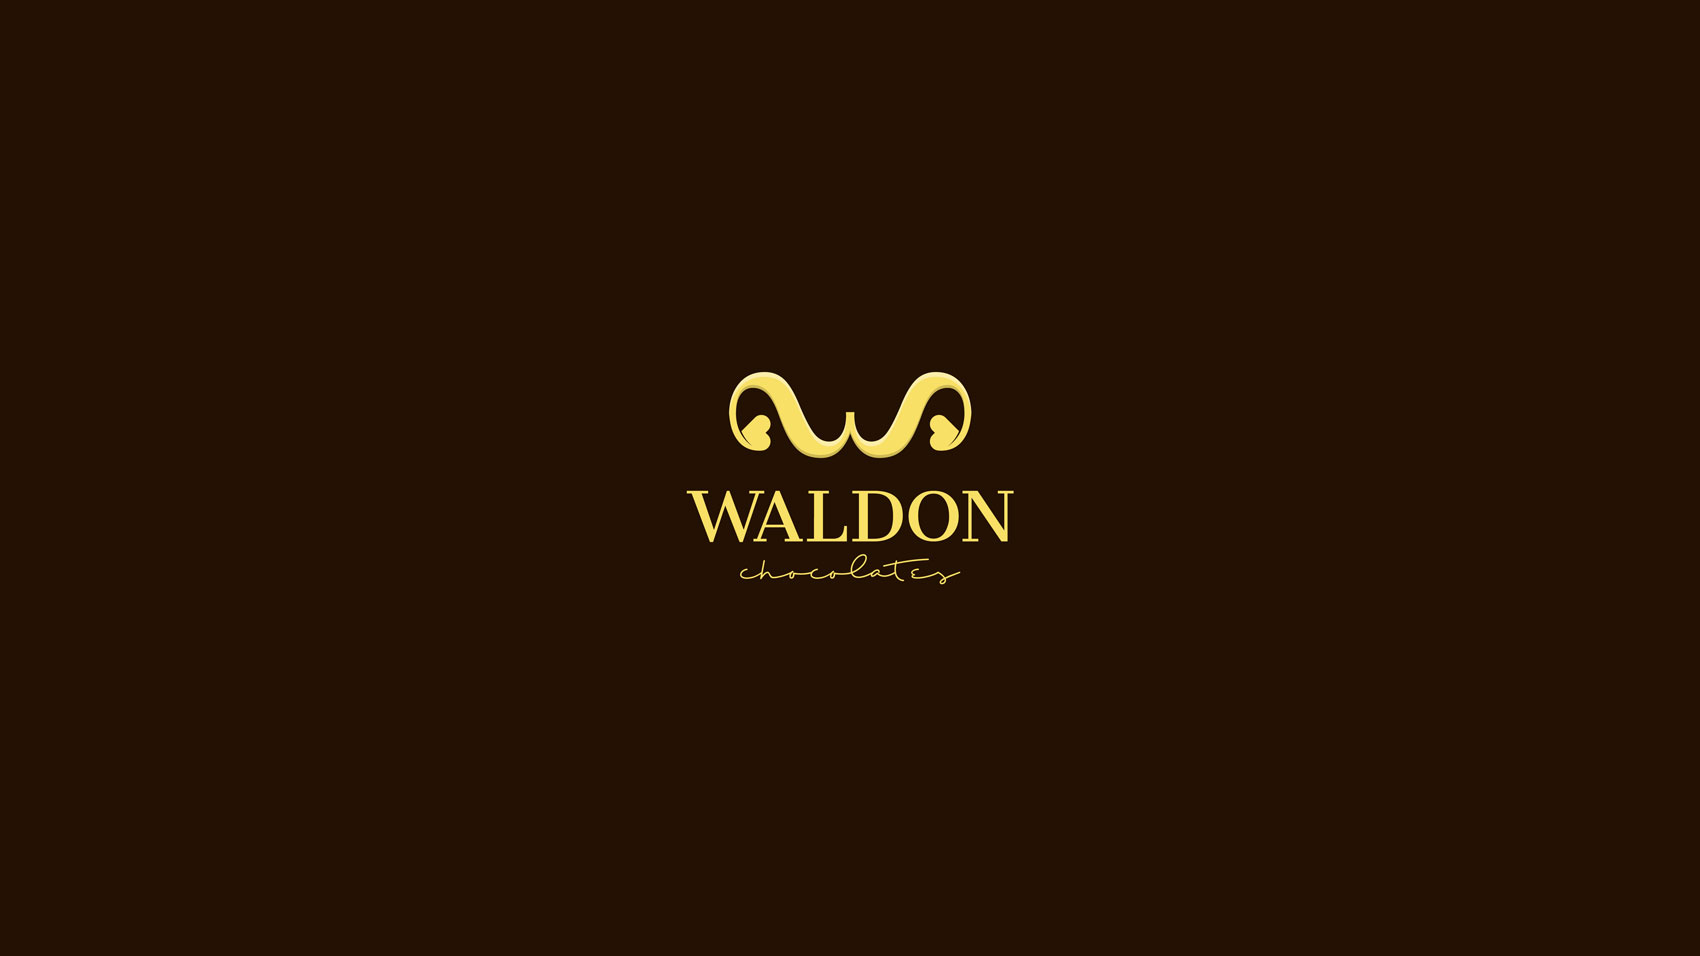 Waldo chocolates logo design